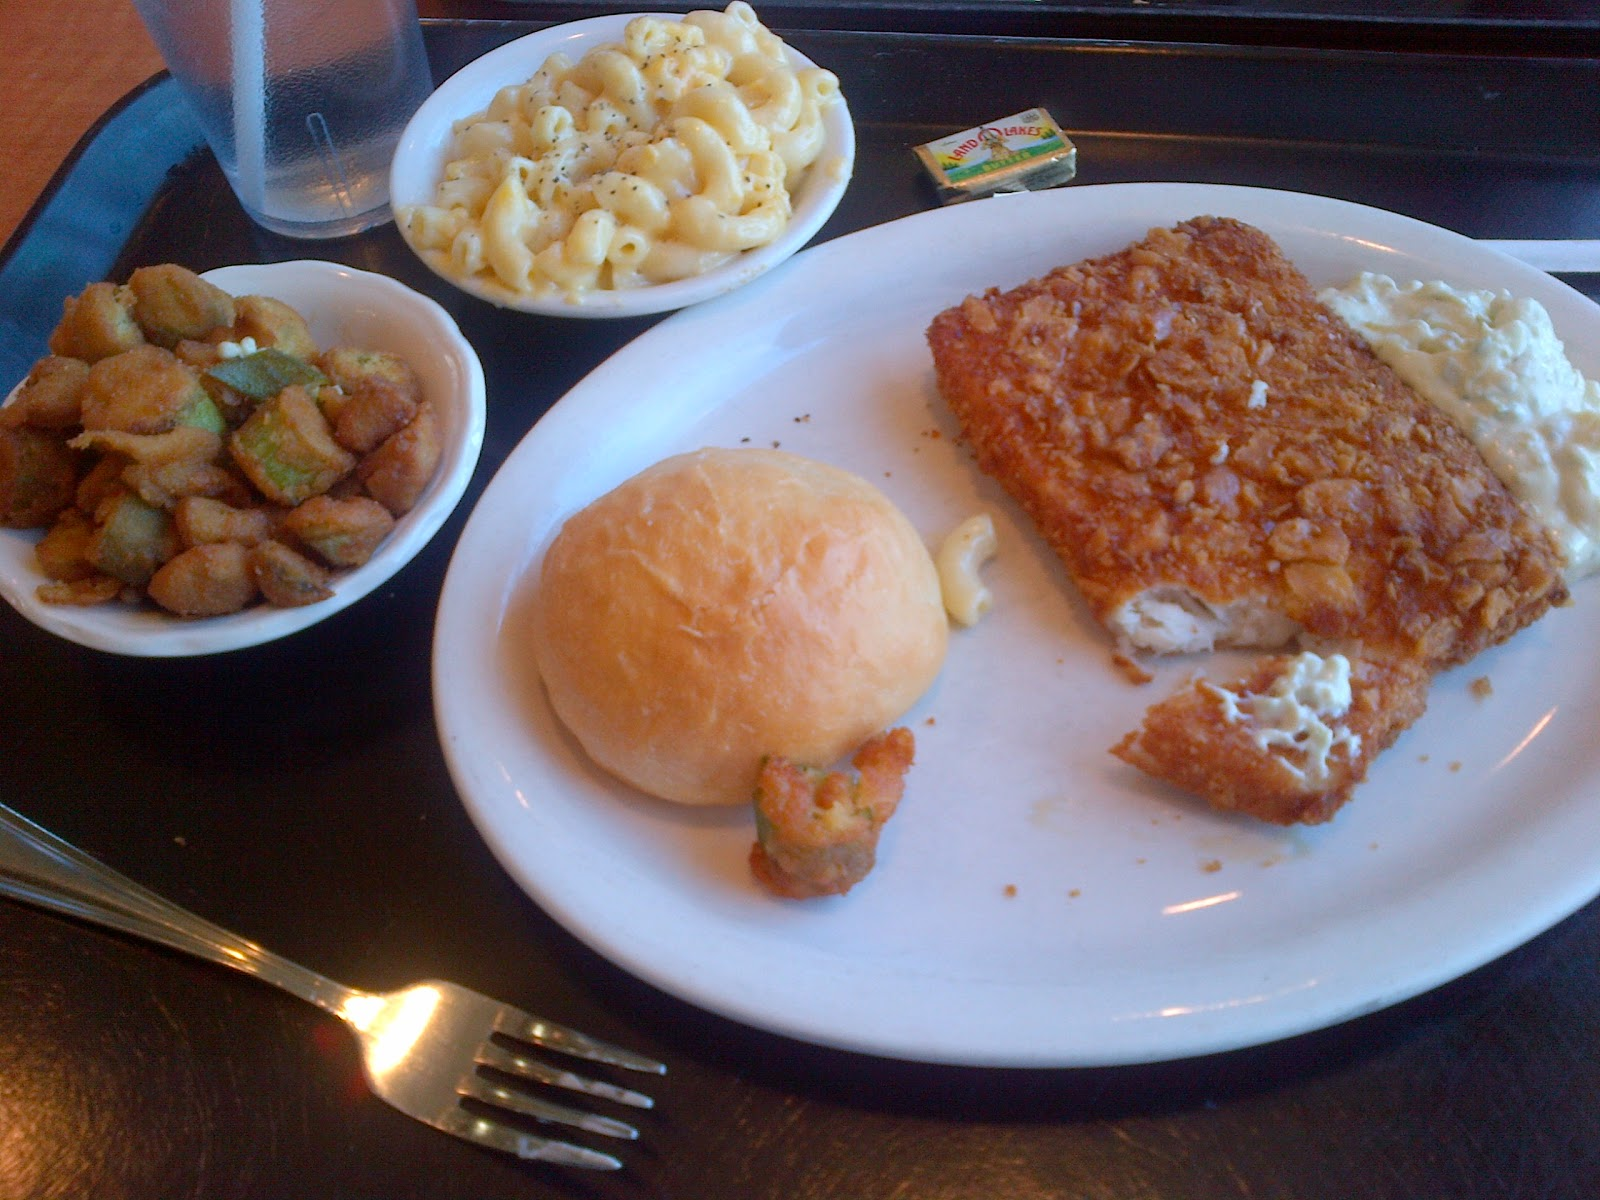 Chungry luby 39 s 1414 waugh drive houston tx for Lubys fried fish